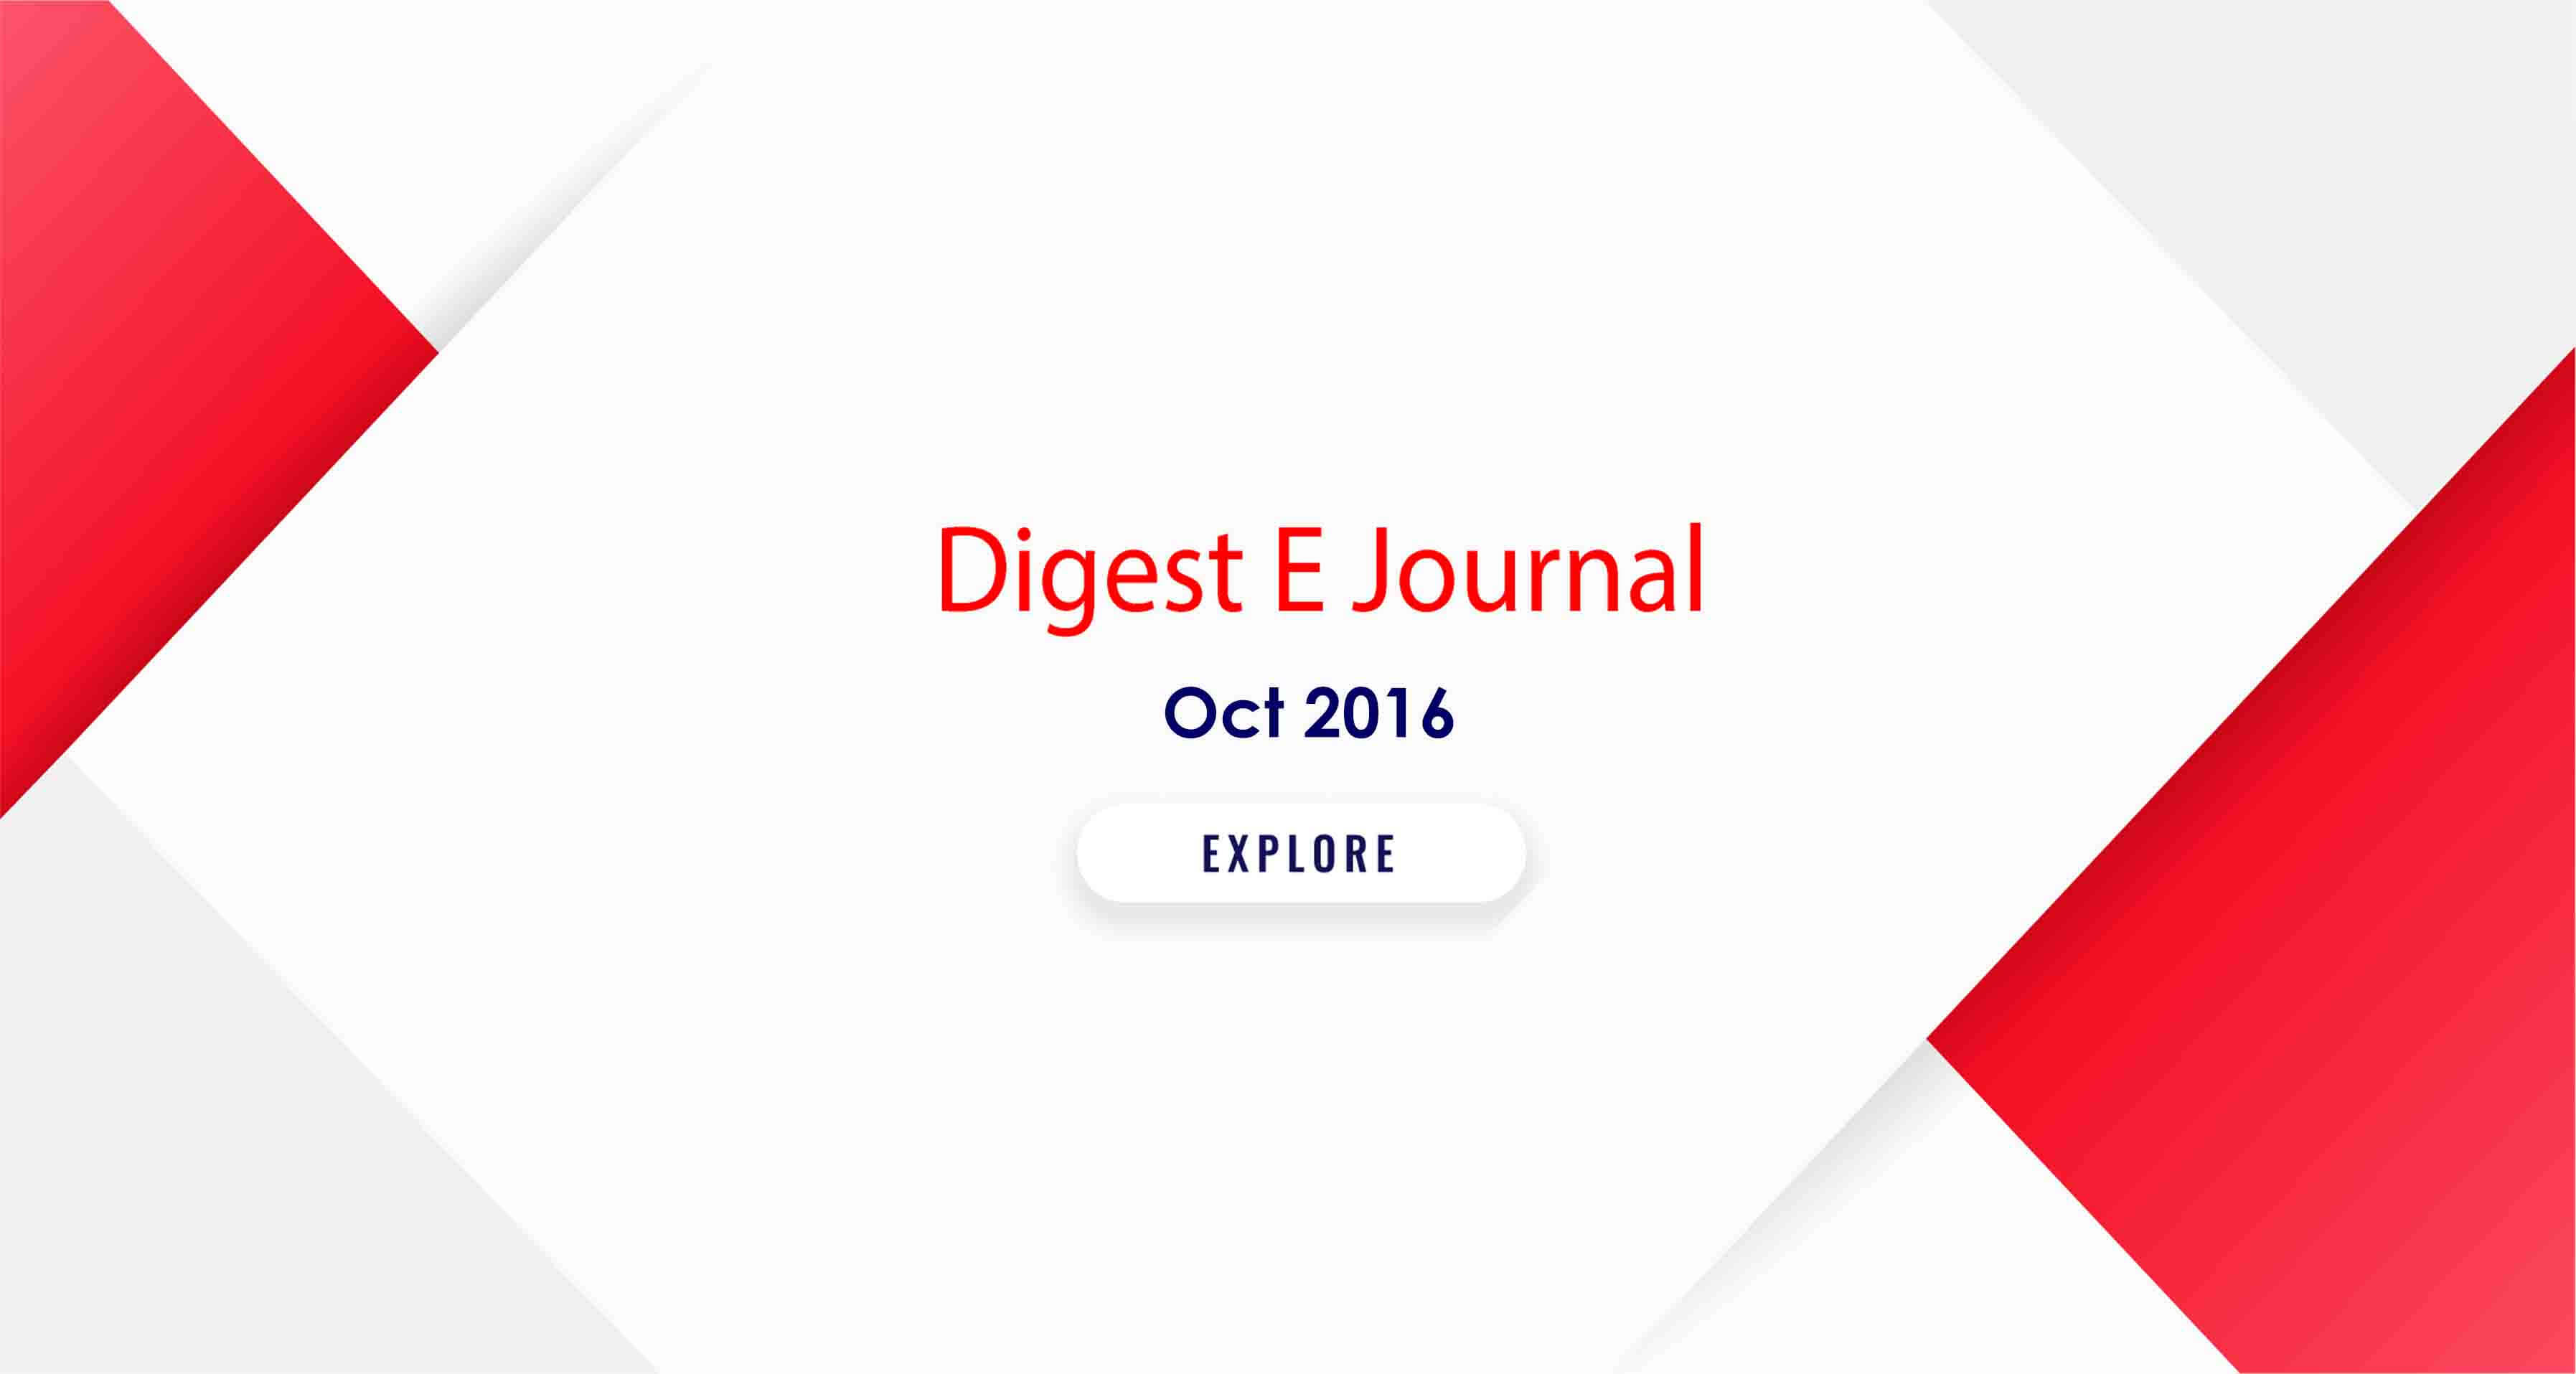 Oct 2016 Interns Digest